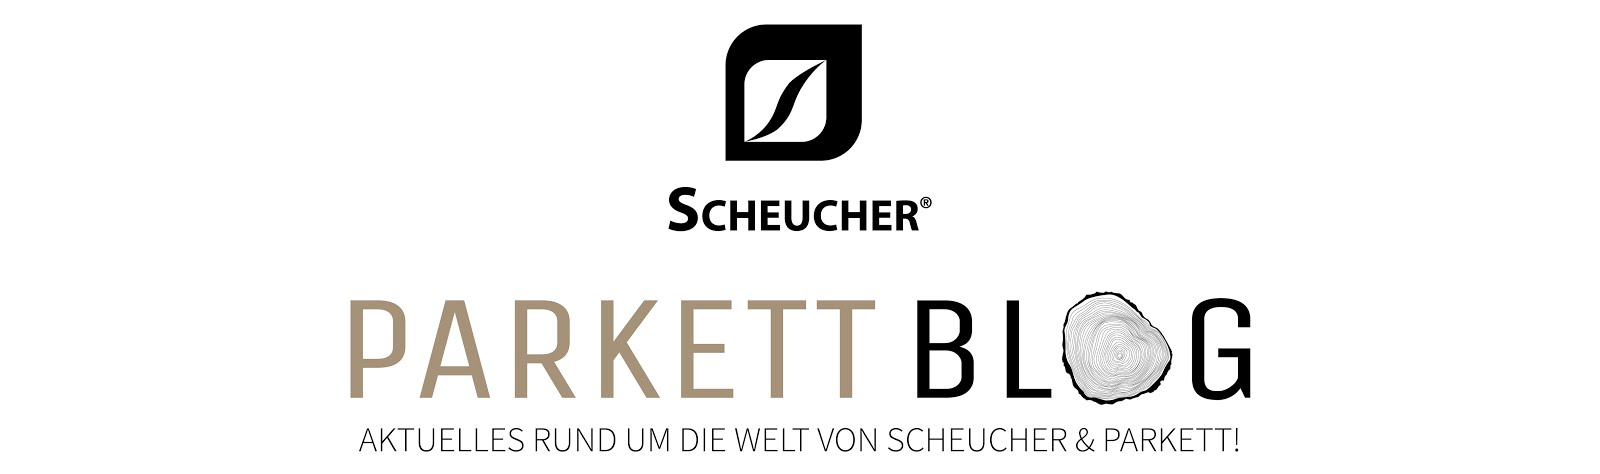 Scheucher Parkett Blog